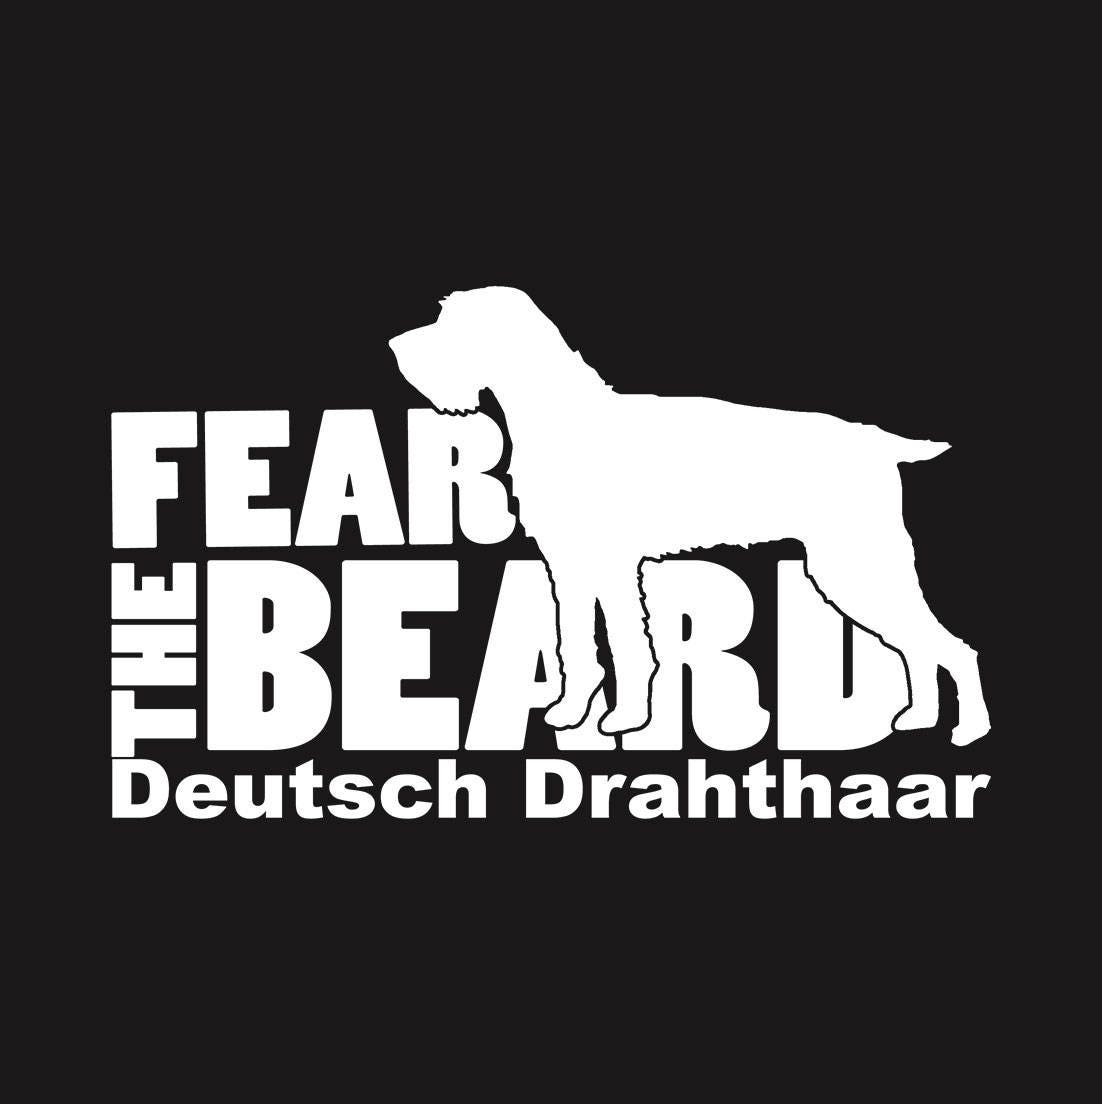 Fear the Beard Deutsch Drahthaar: Car Window Vinyl Decal